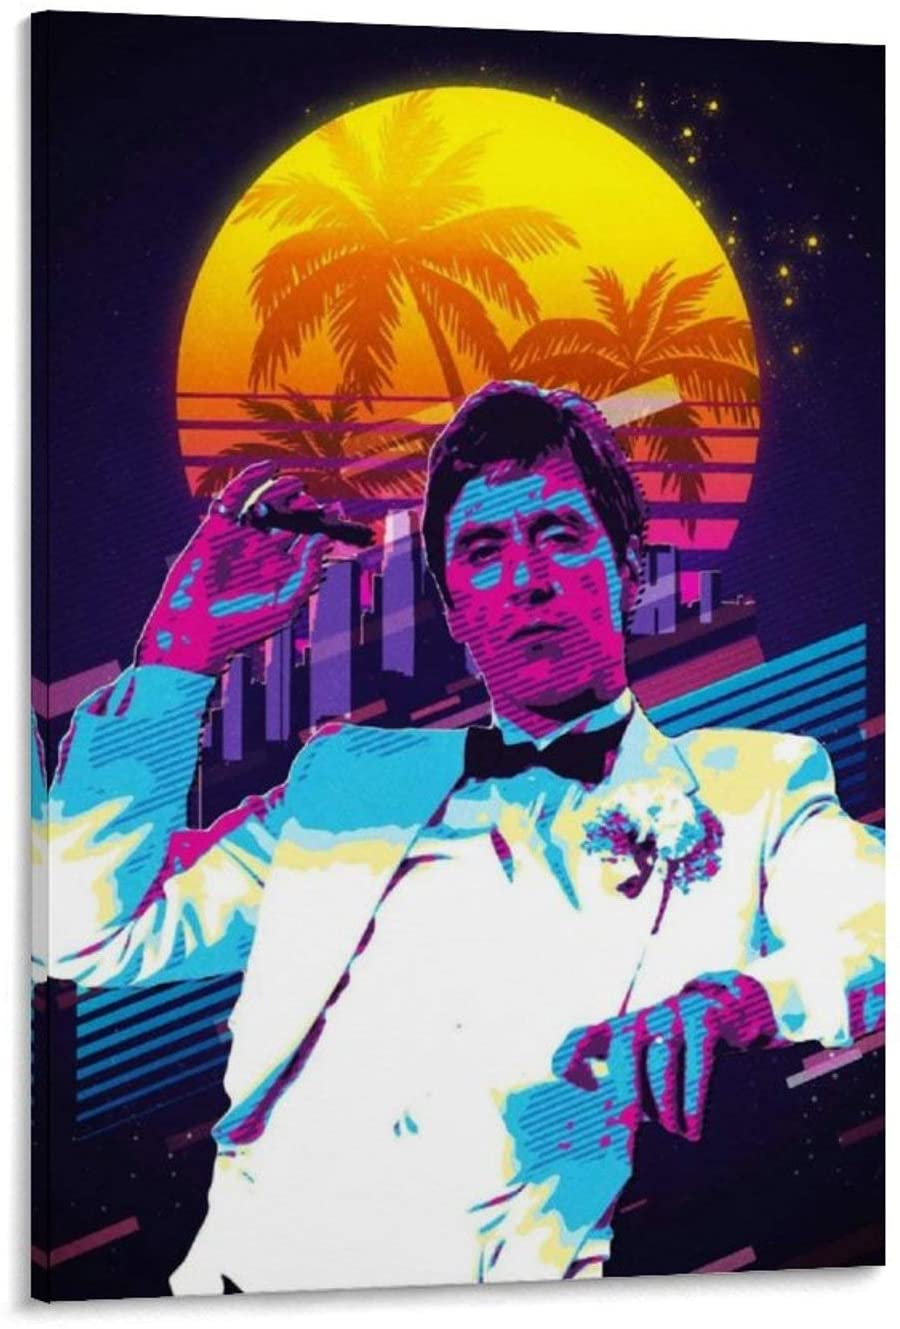 caomei Scarface Canvas Art Poster and Wall Art Picture Print Modern Family Bedroom Decor Posters 20x30inch(50x75cm)